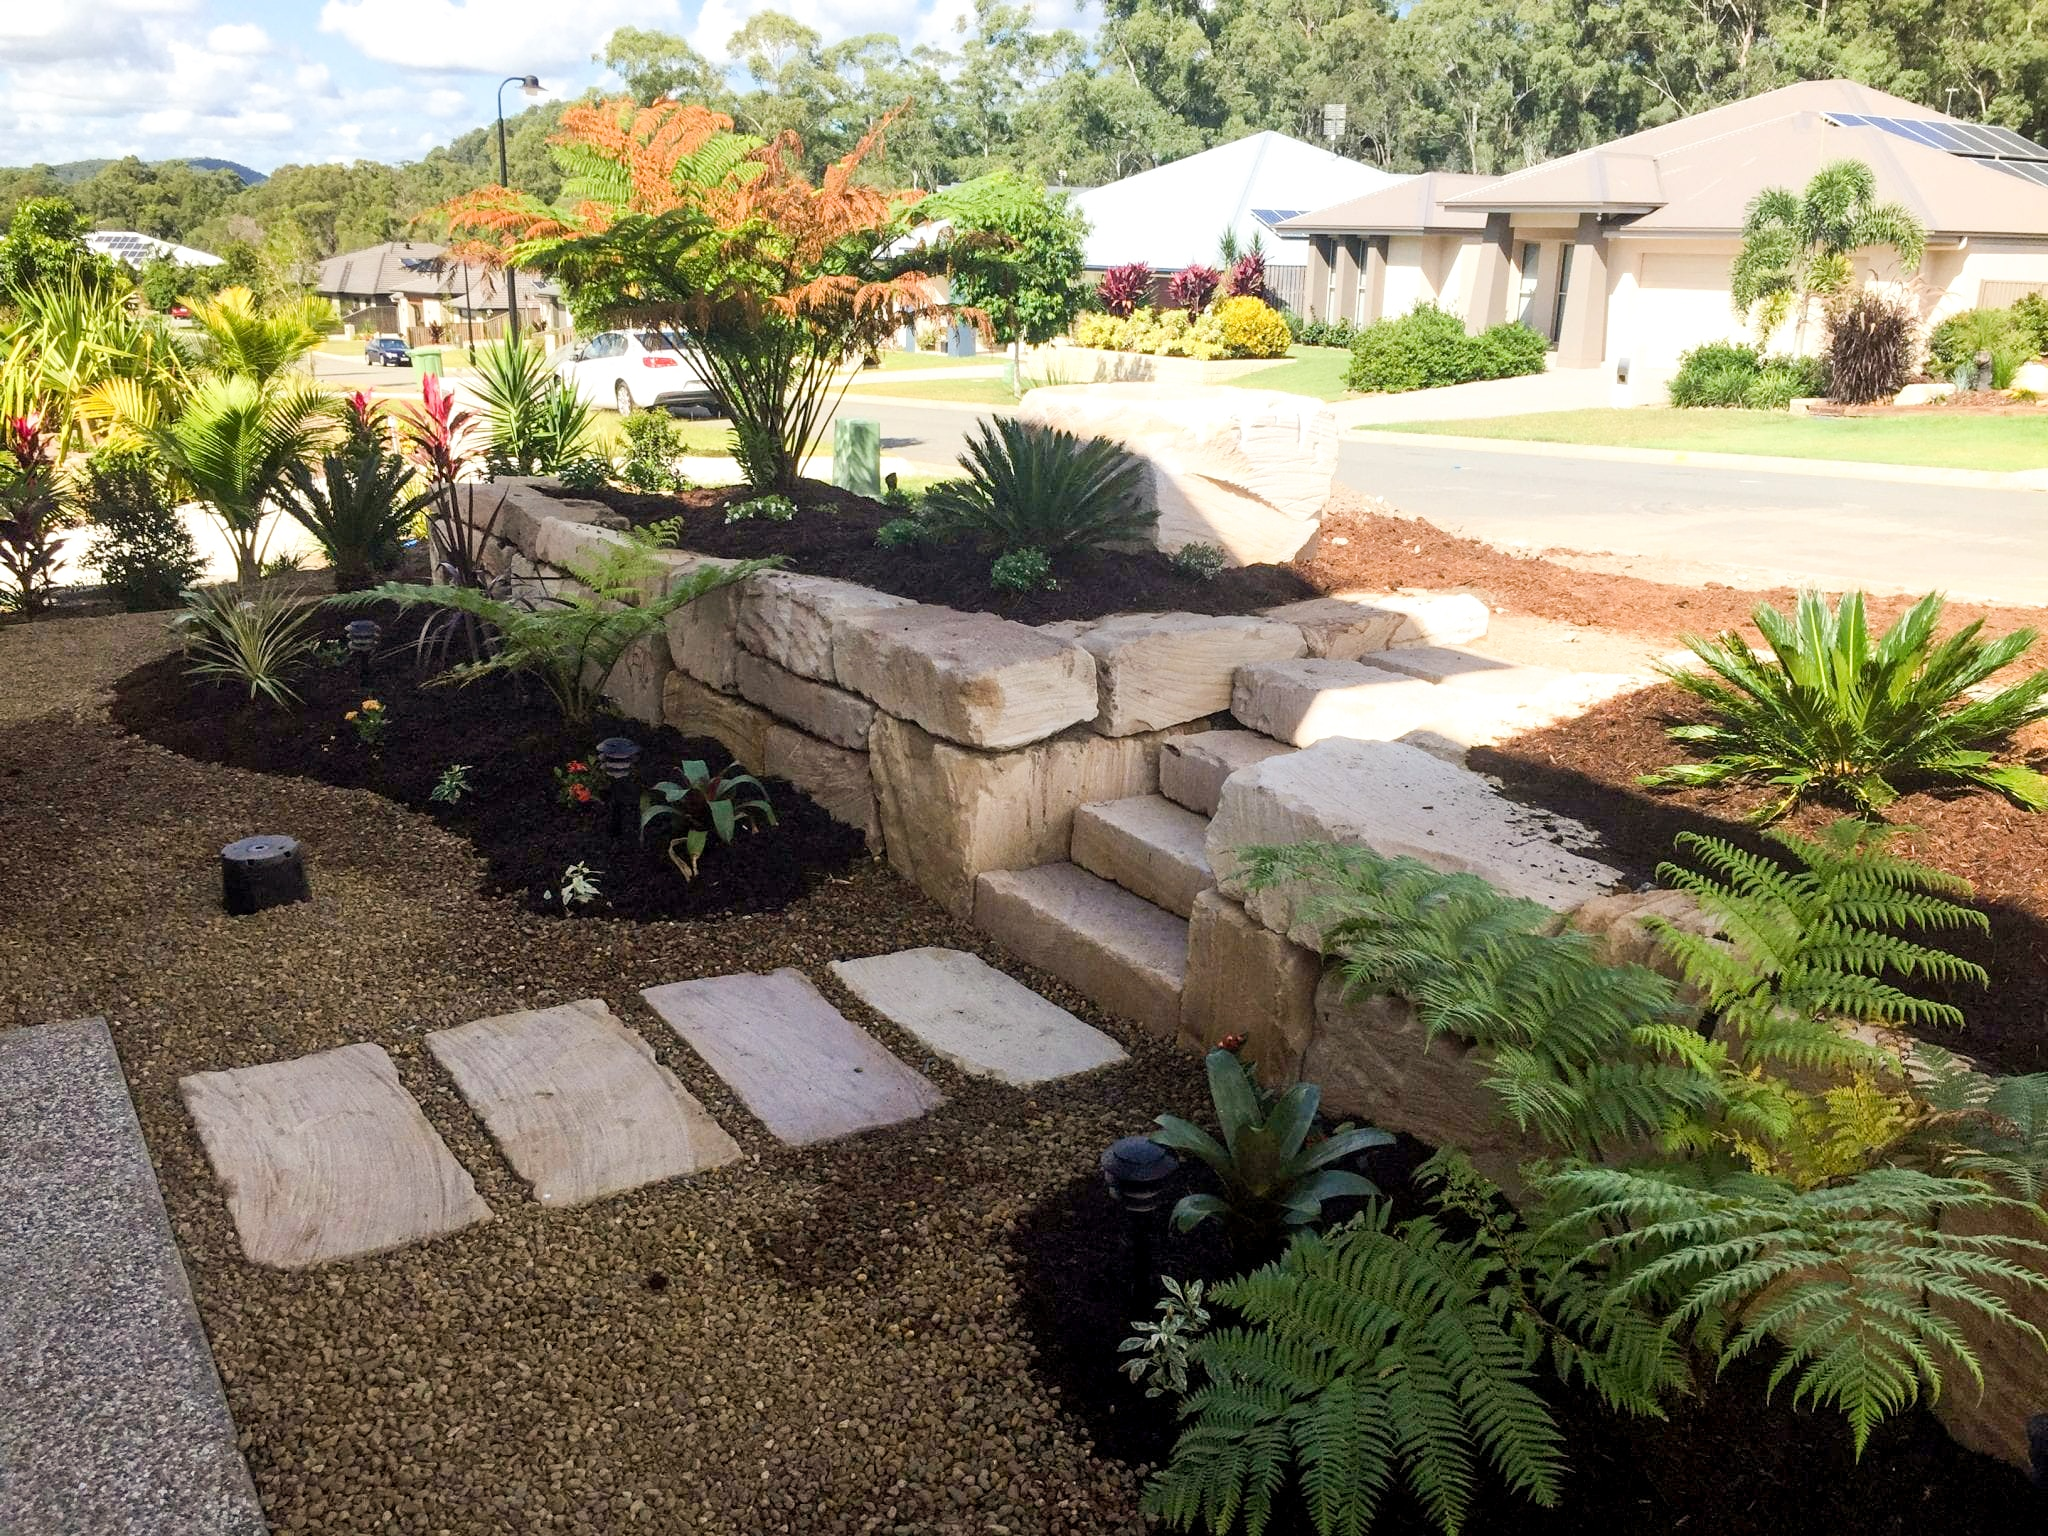 A example of c-grande sandstone rock with steps and steppers | Stone Creek Estate, Upper Coomera